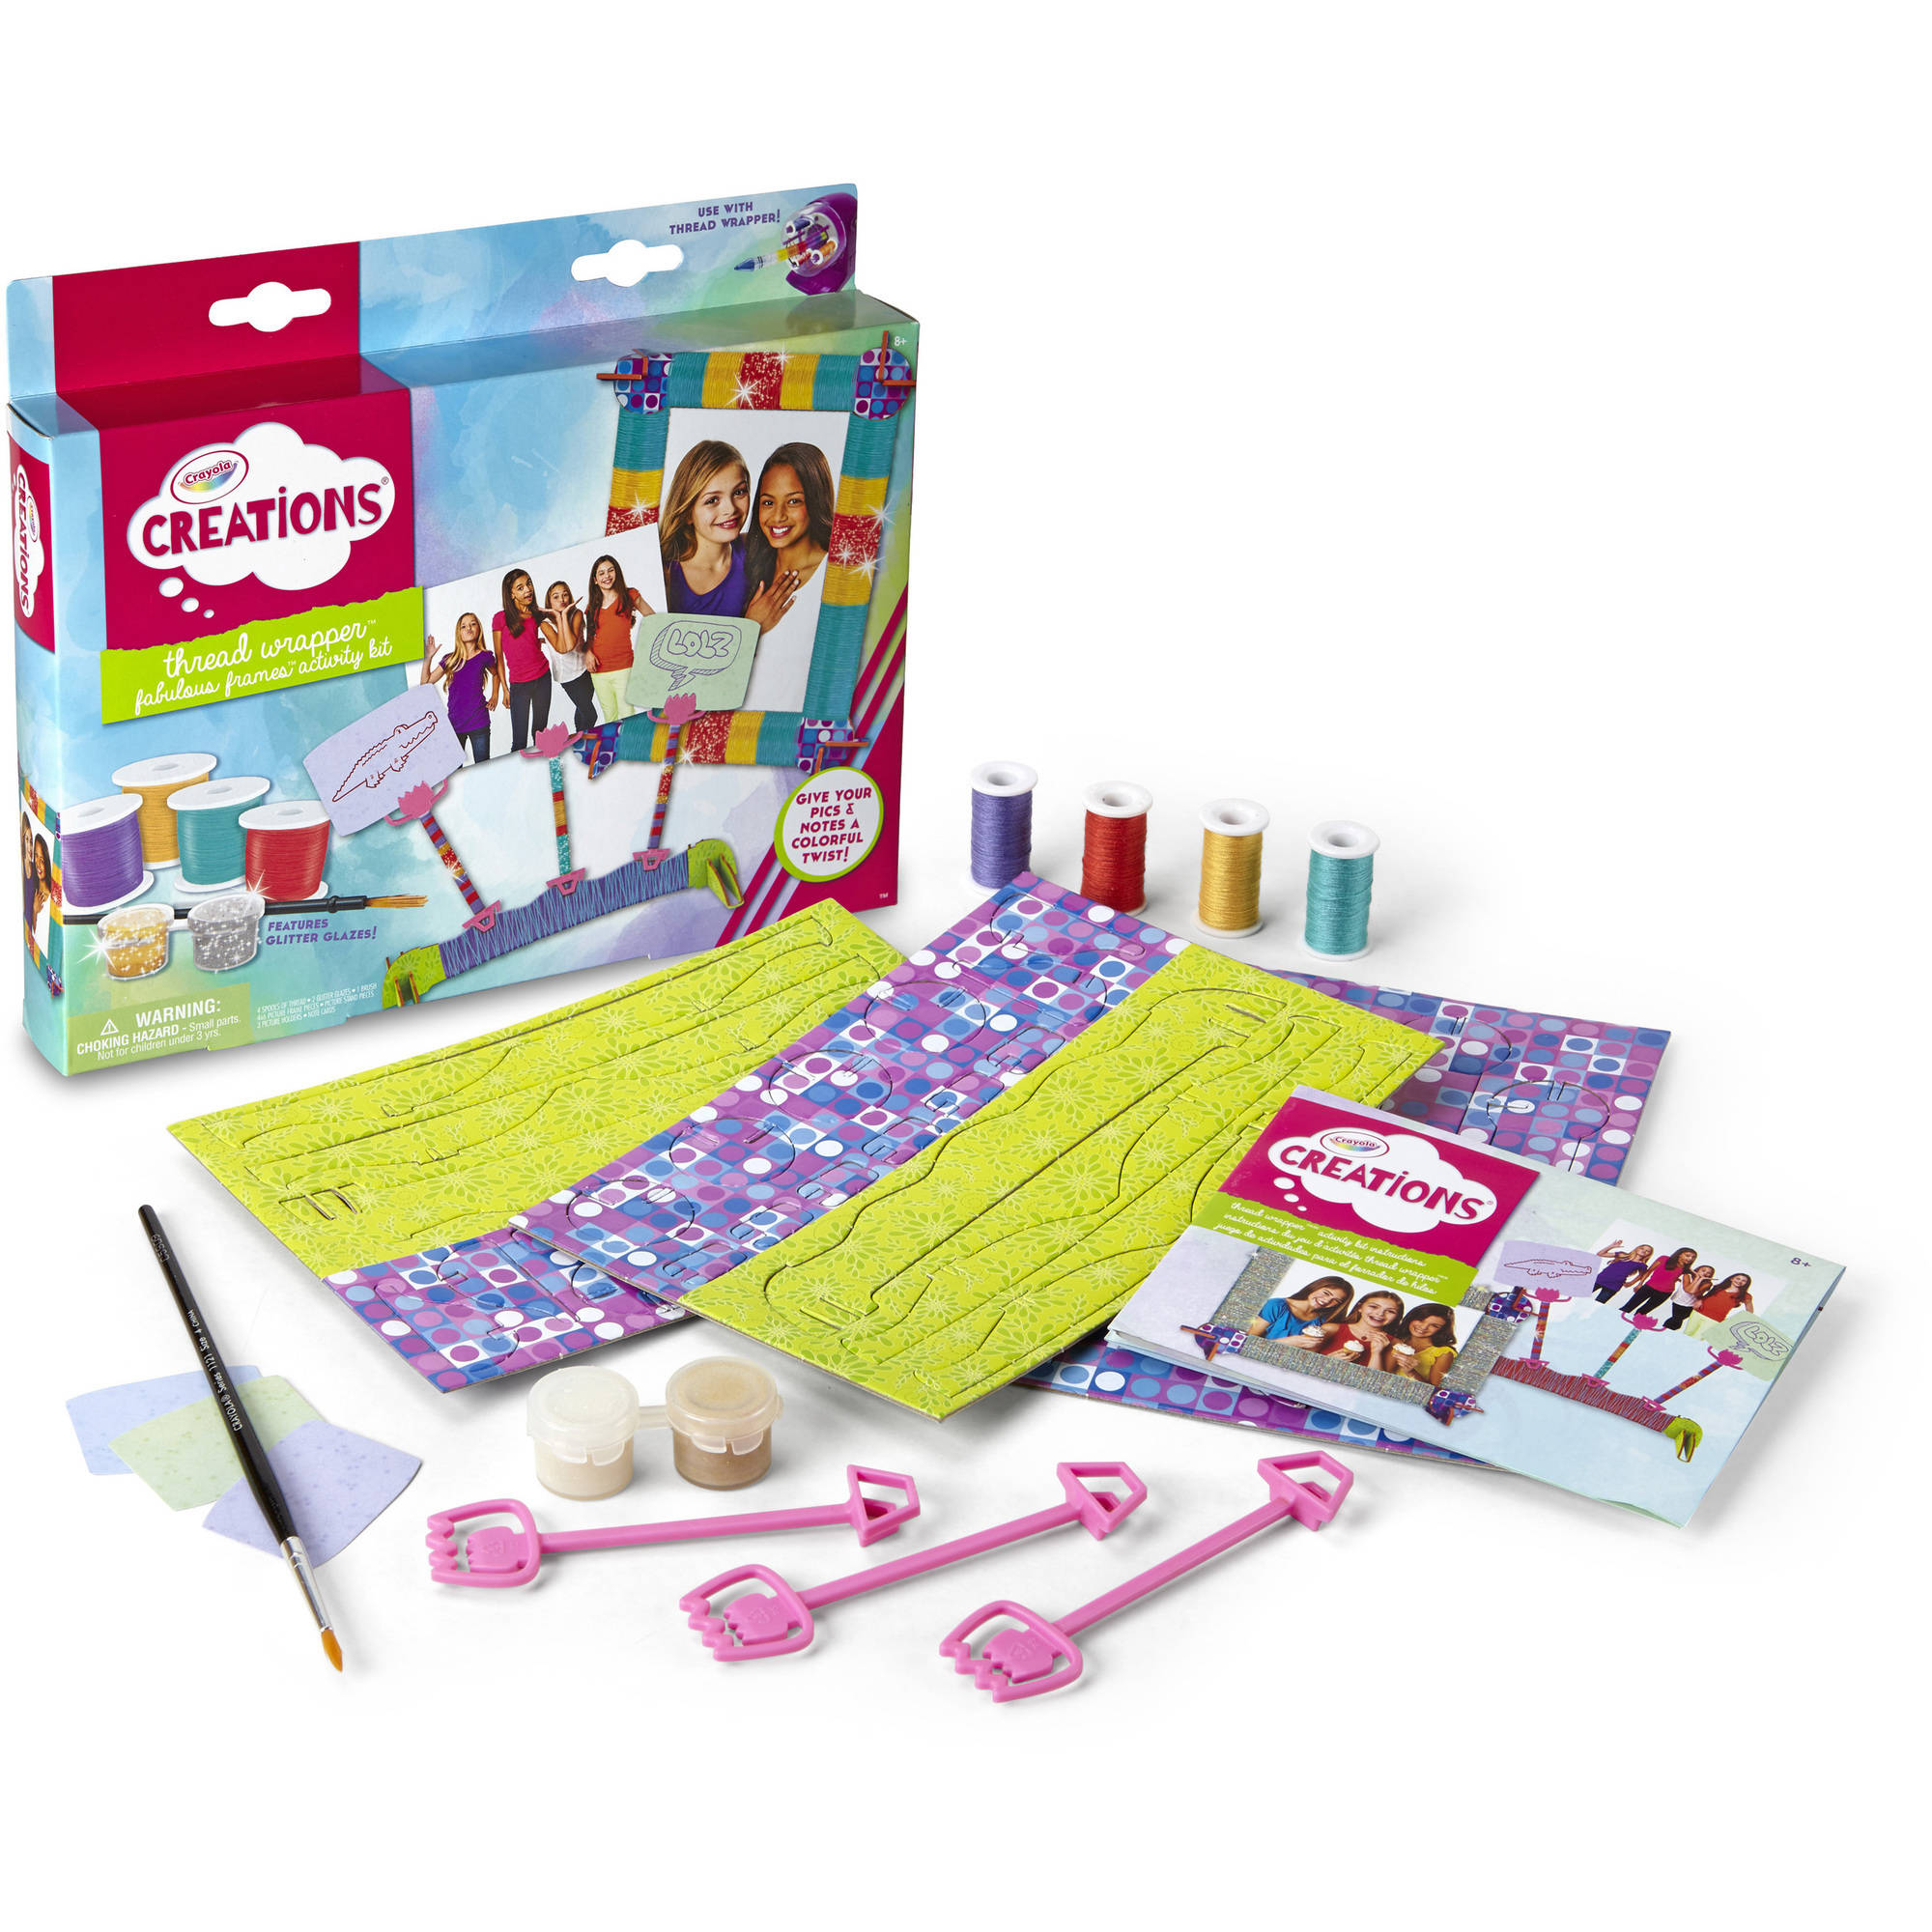 Crayola Thread Wrapper Activity Kit, Gift for Girls, Ages 8, 9, 10, 11 by Crayola